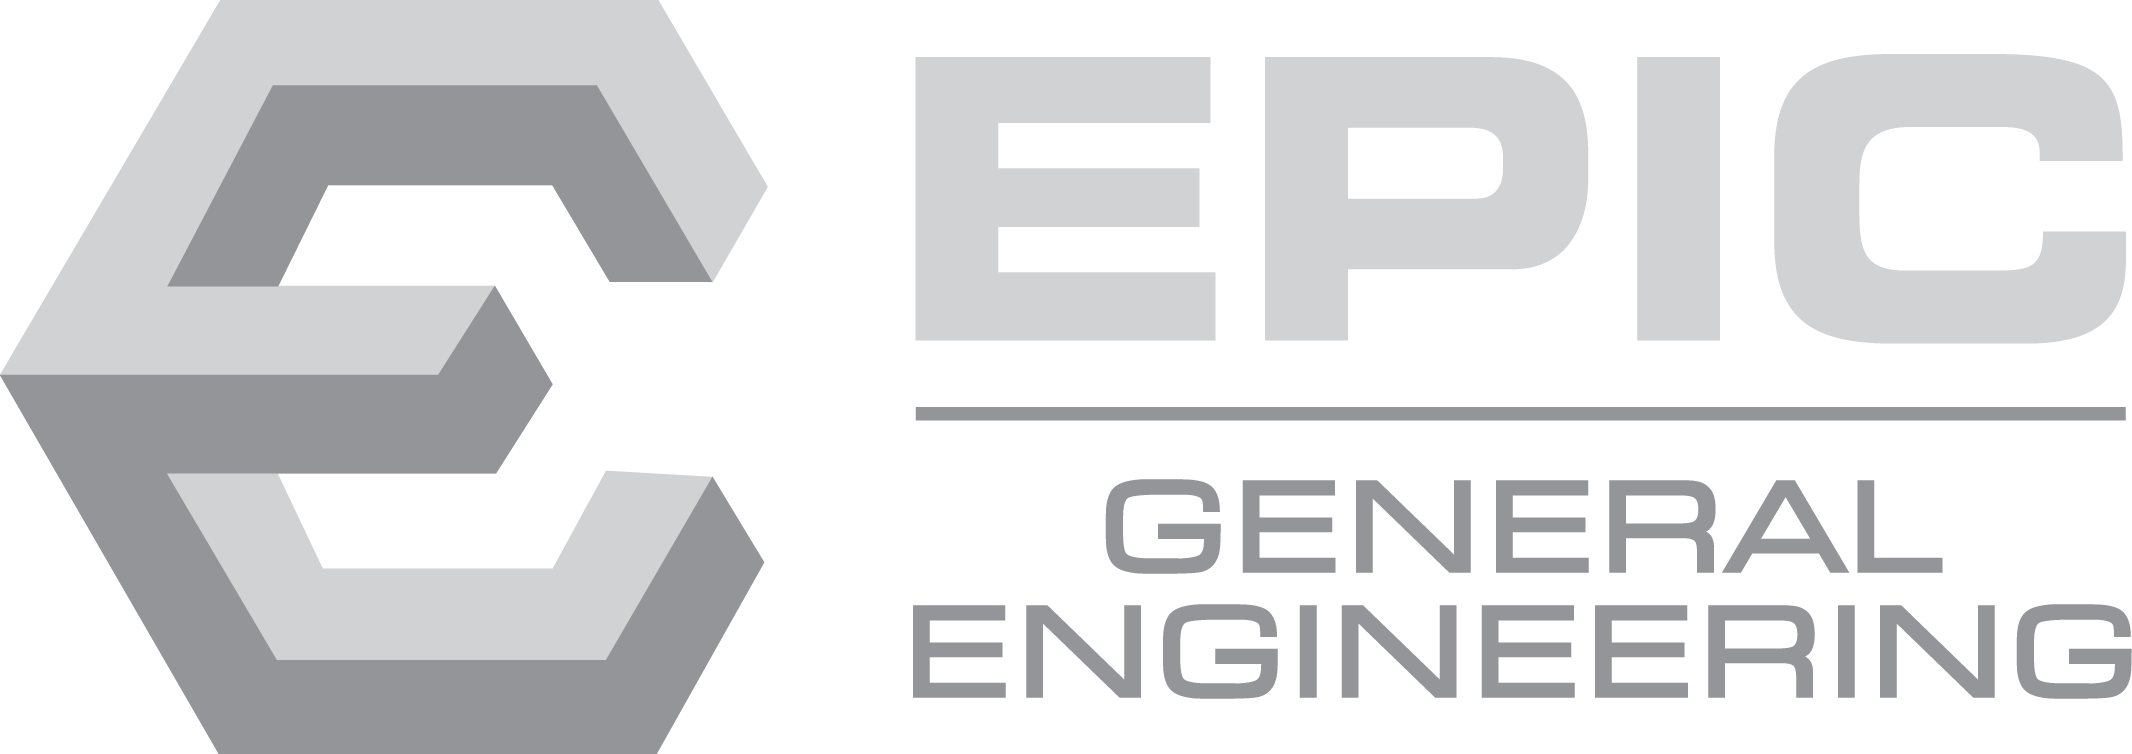 epic general engineering logo